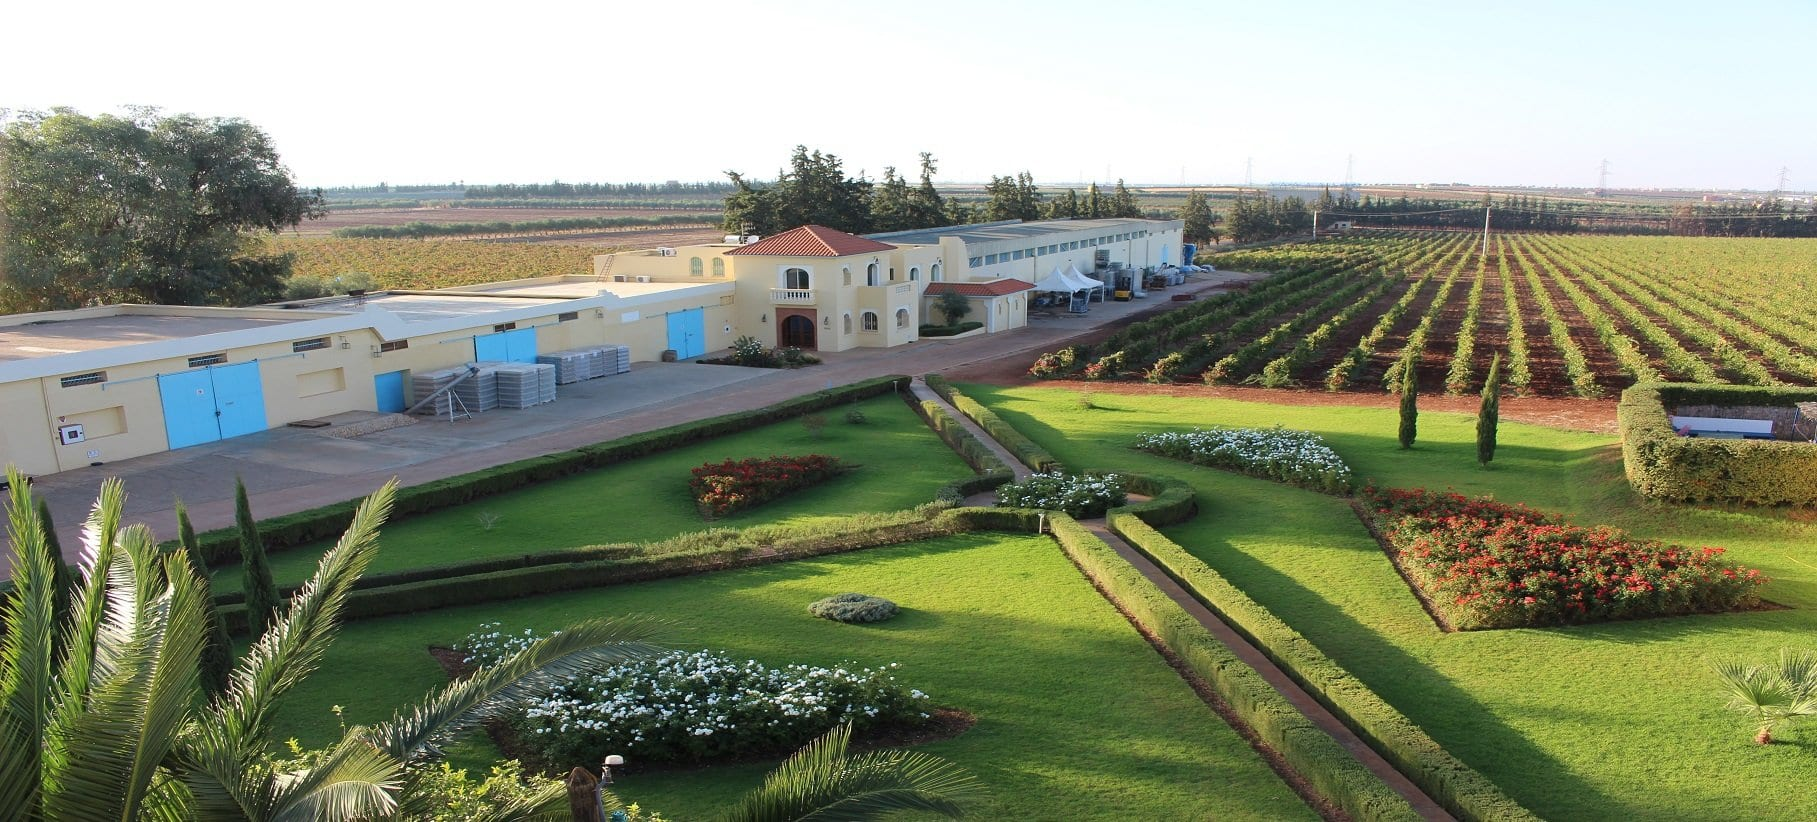 winery in Meknes